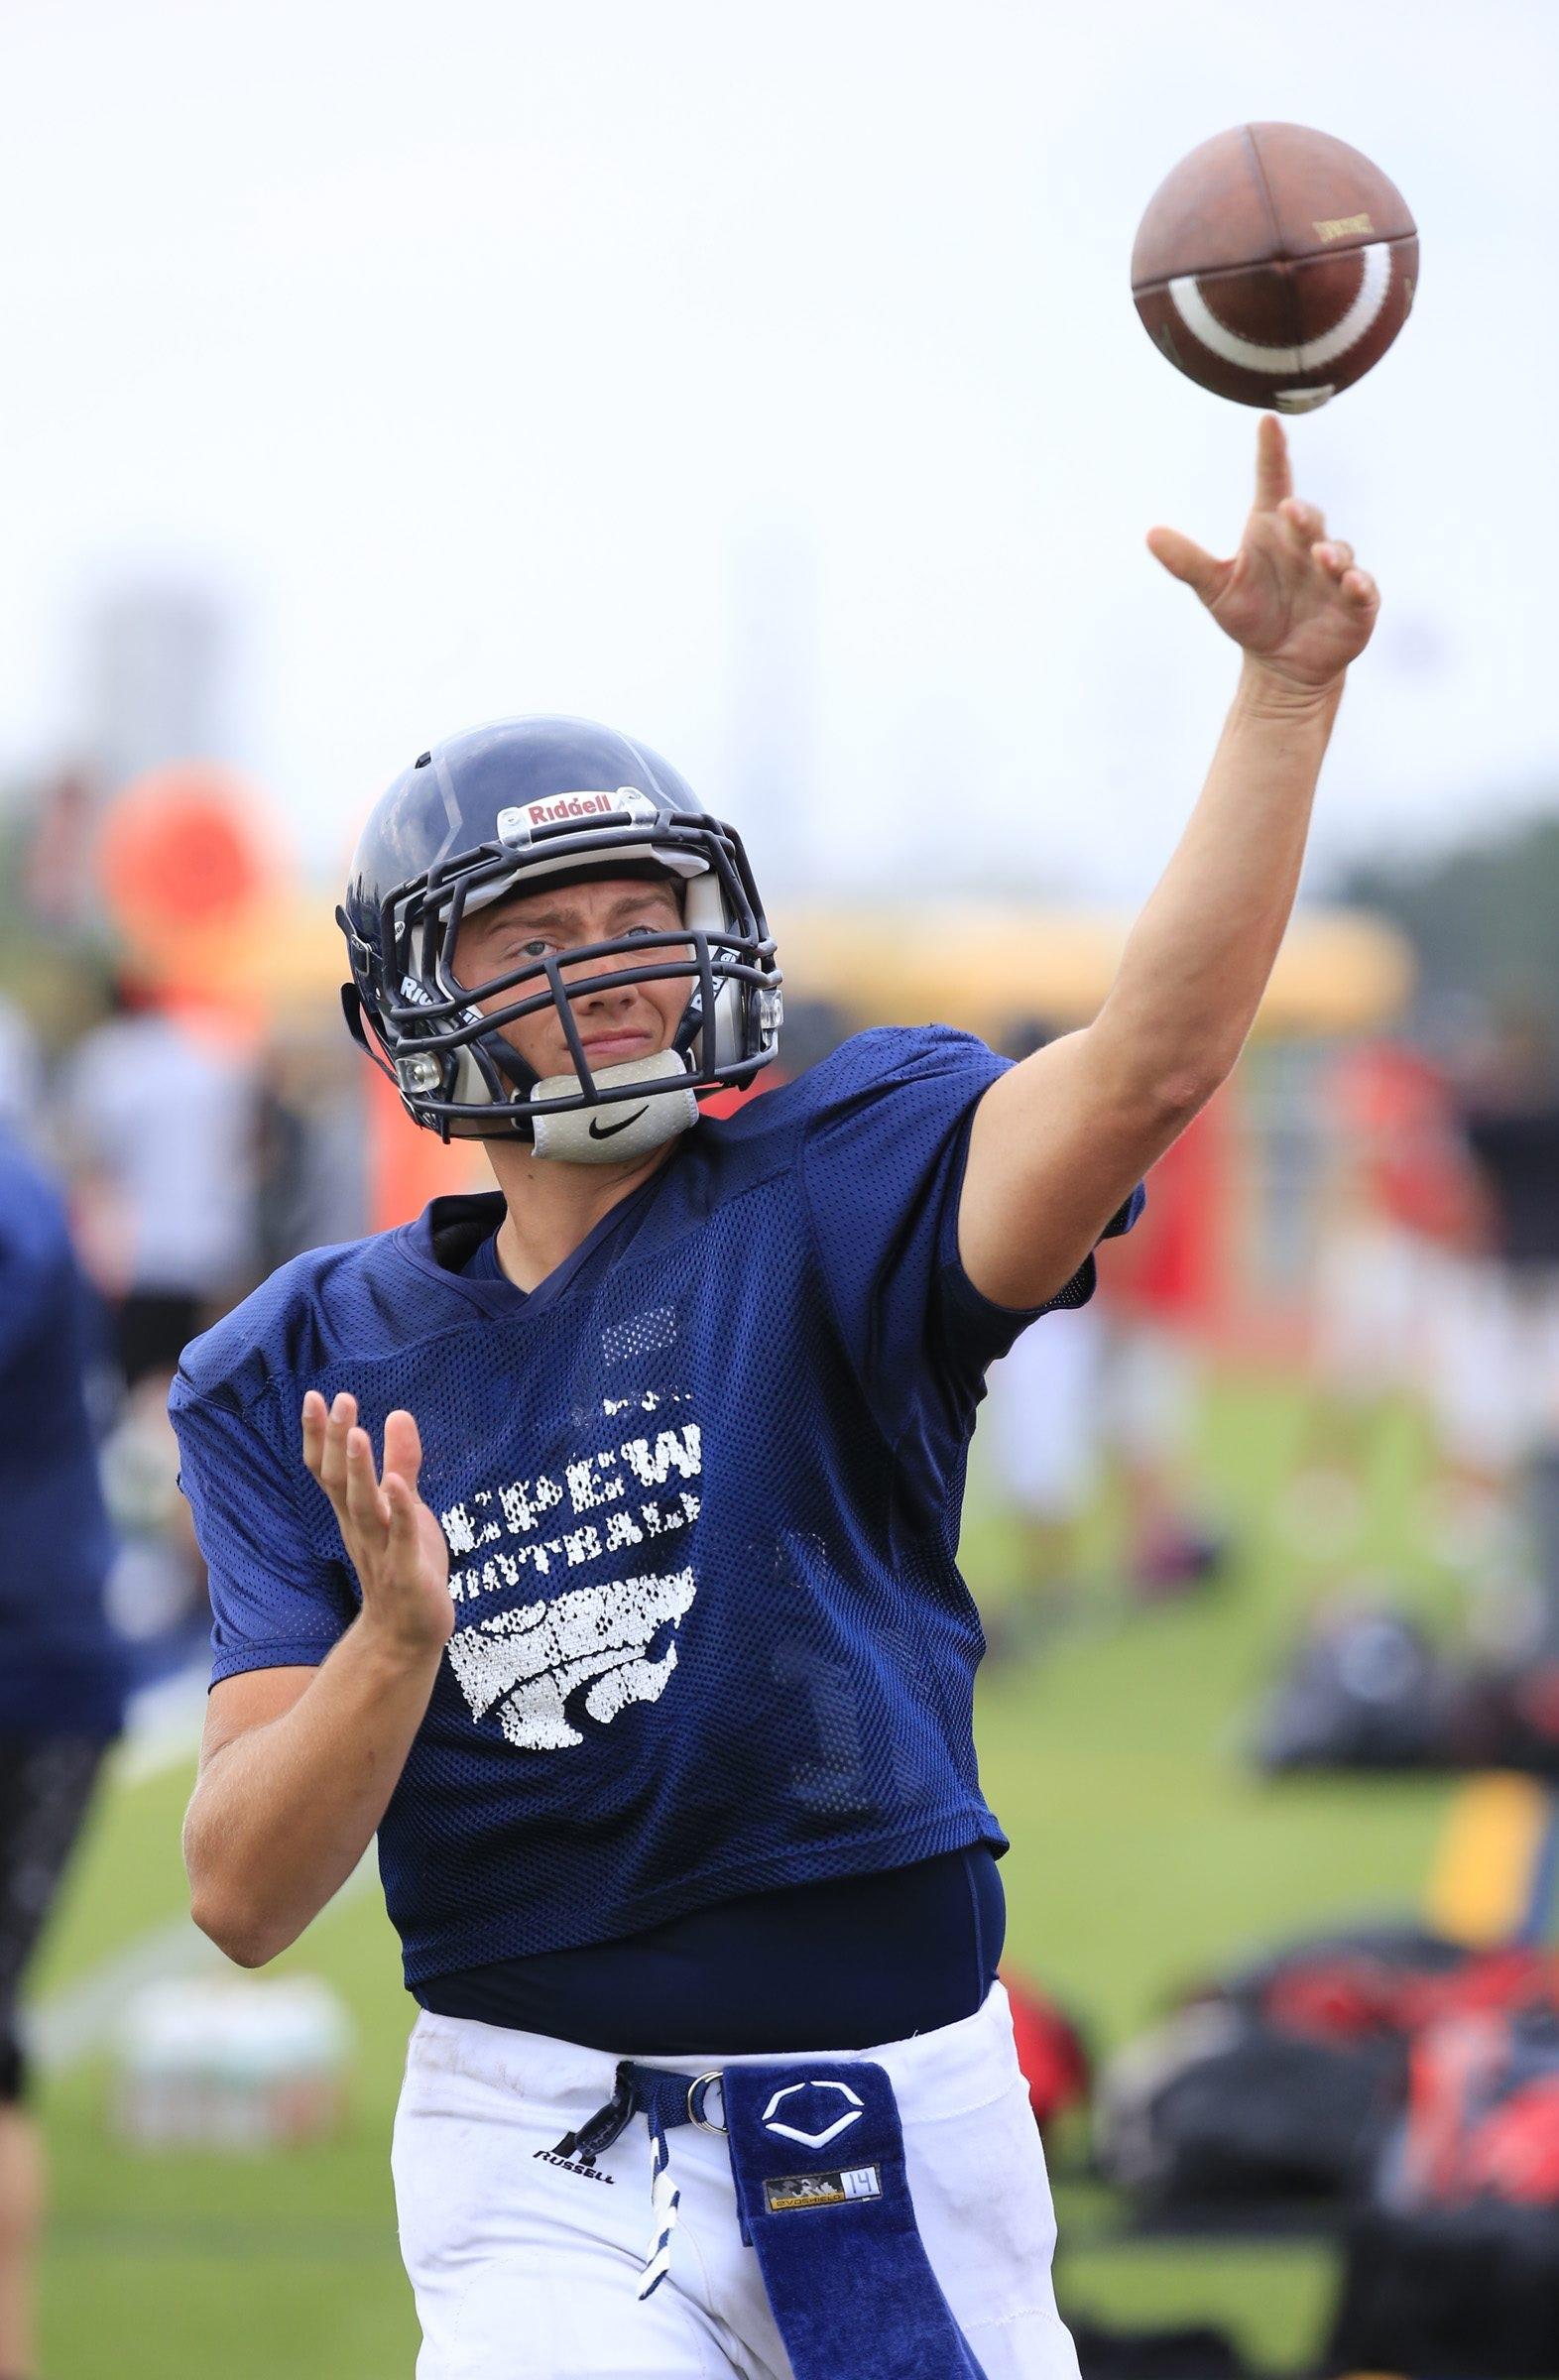 Ryan Guay is the new quarterback at Depew, taking over for Dylan Sekuterski, who graduated.